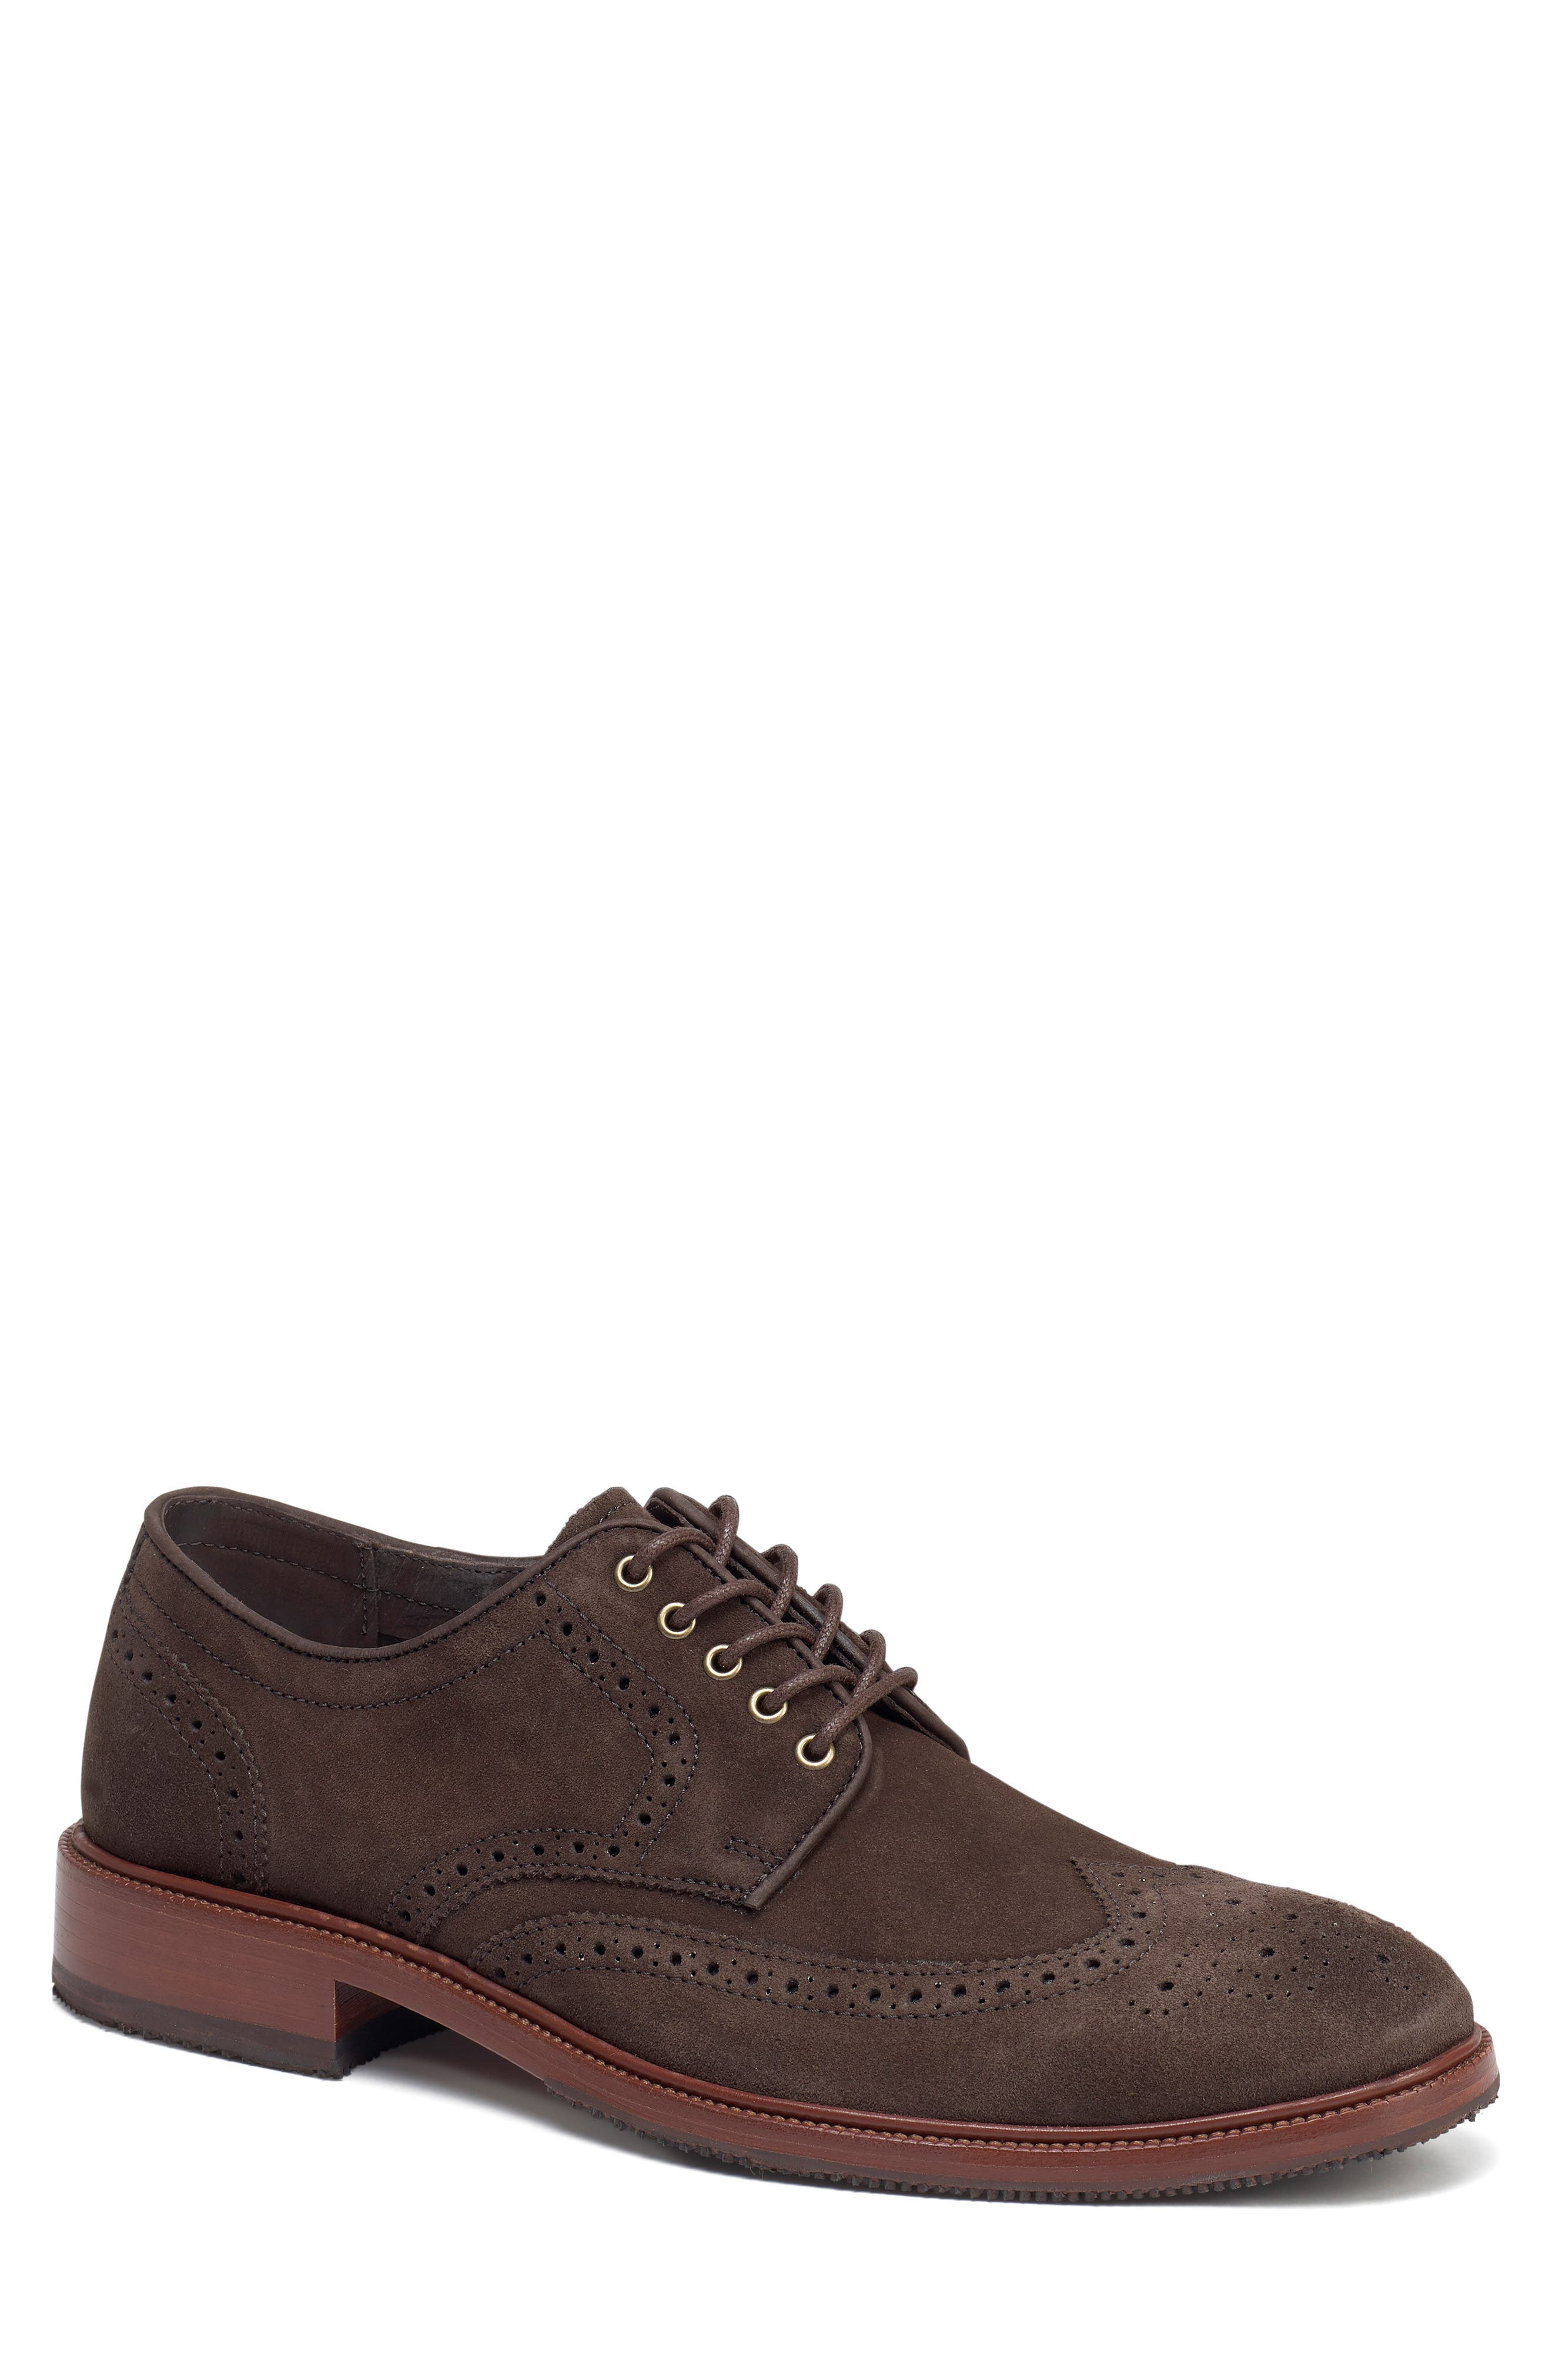 Logan Wingtip Derby,                             Main thumbnail 1, color,                             CHARCOAL SUEDE